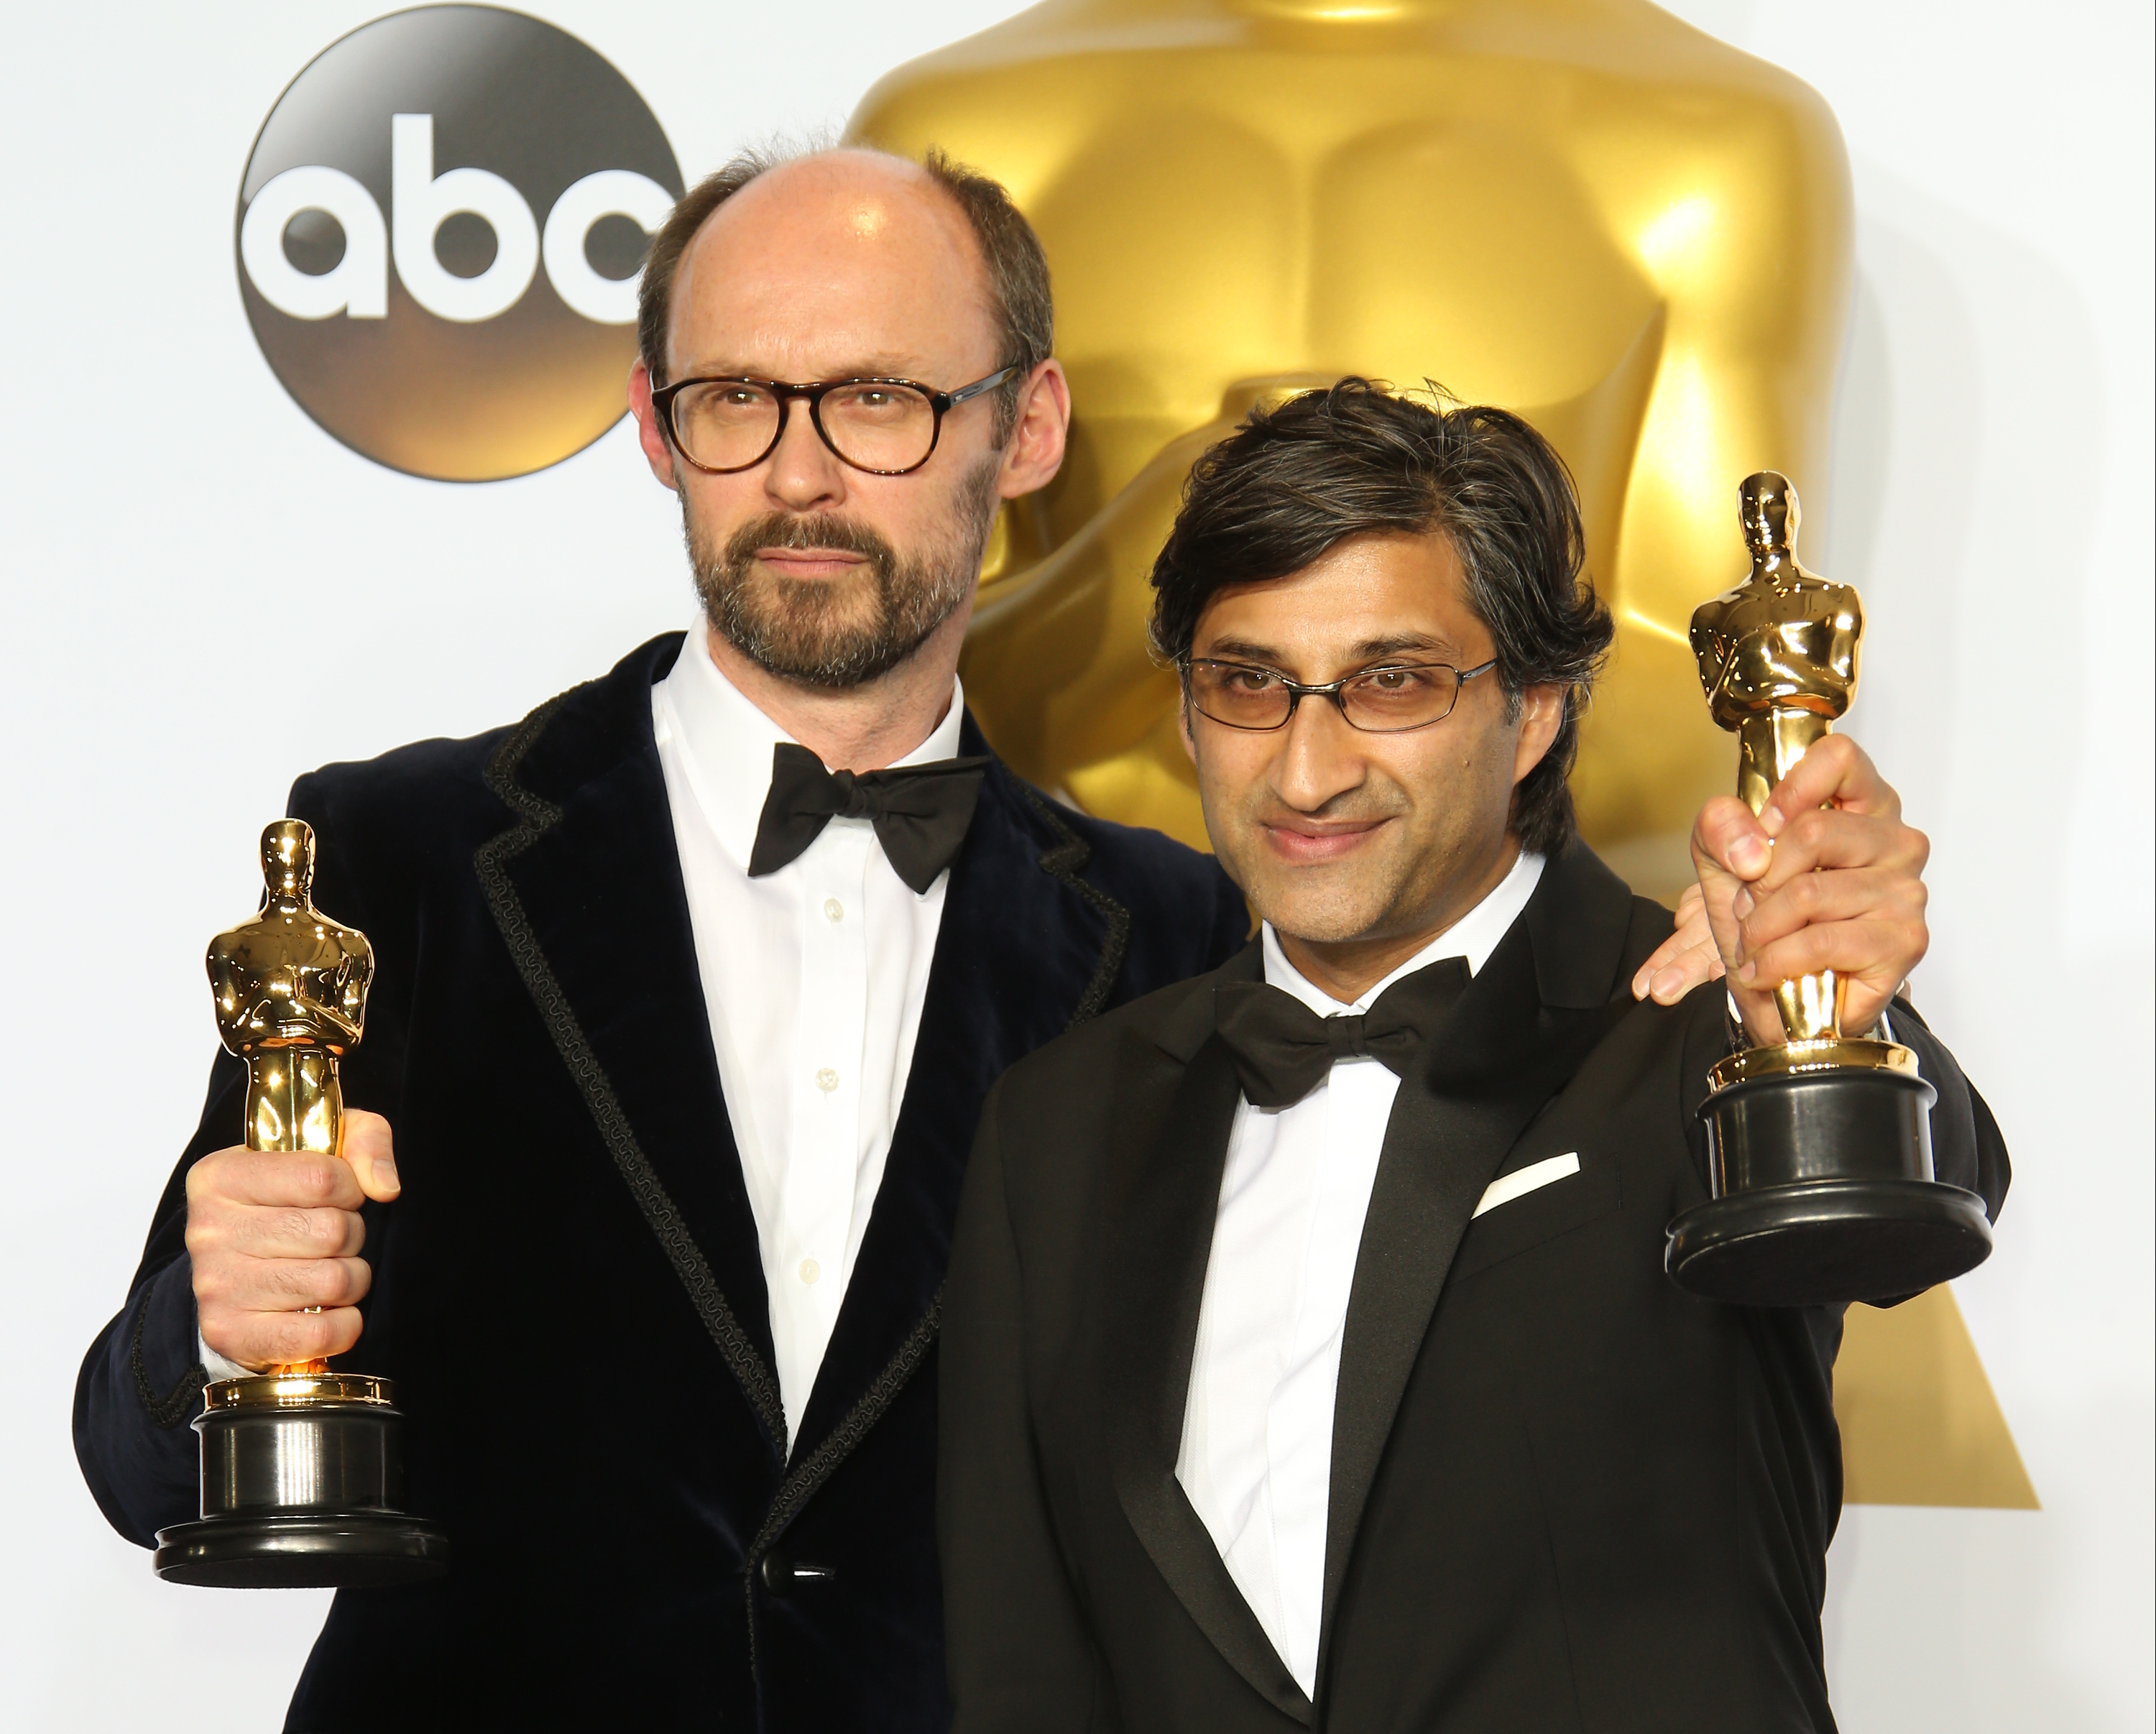 (L-R) James Gay-Rees and Asif Kapadia, winners for Best Documentary Feature for 'Amy,' pose in the press room at the 88th Annual Academy Awards at Hollywood & Highland Center on February 28, 2016 in Hollywood, California.